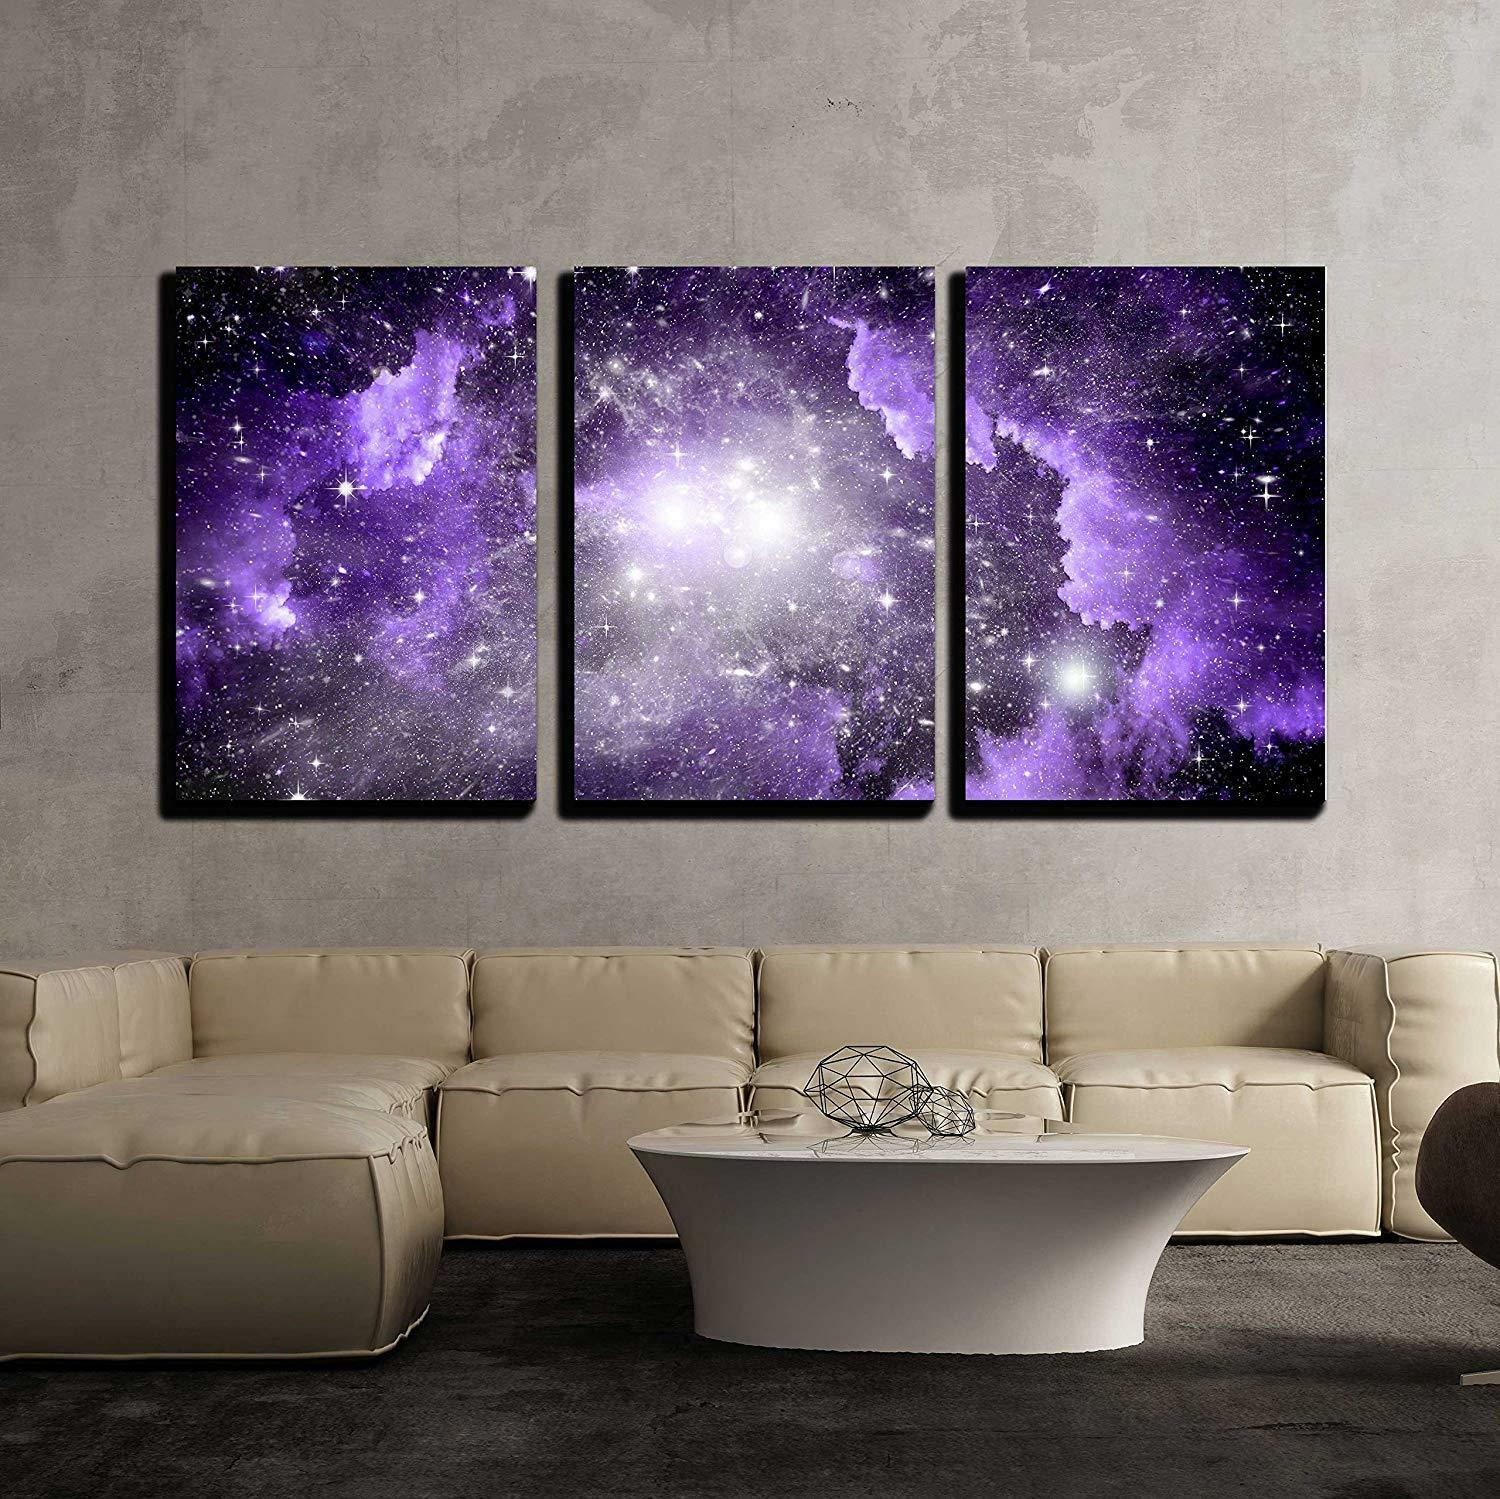 Wall26 - Stars of a Planet and Galaxy in a Free Space - CVS - 24 x36 x3 Panels